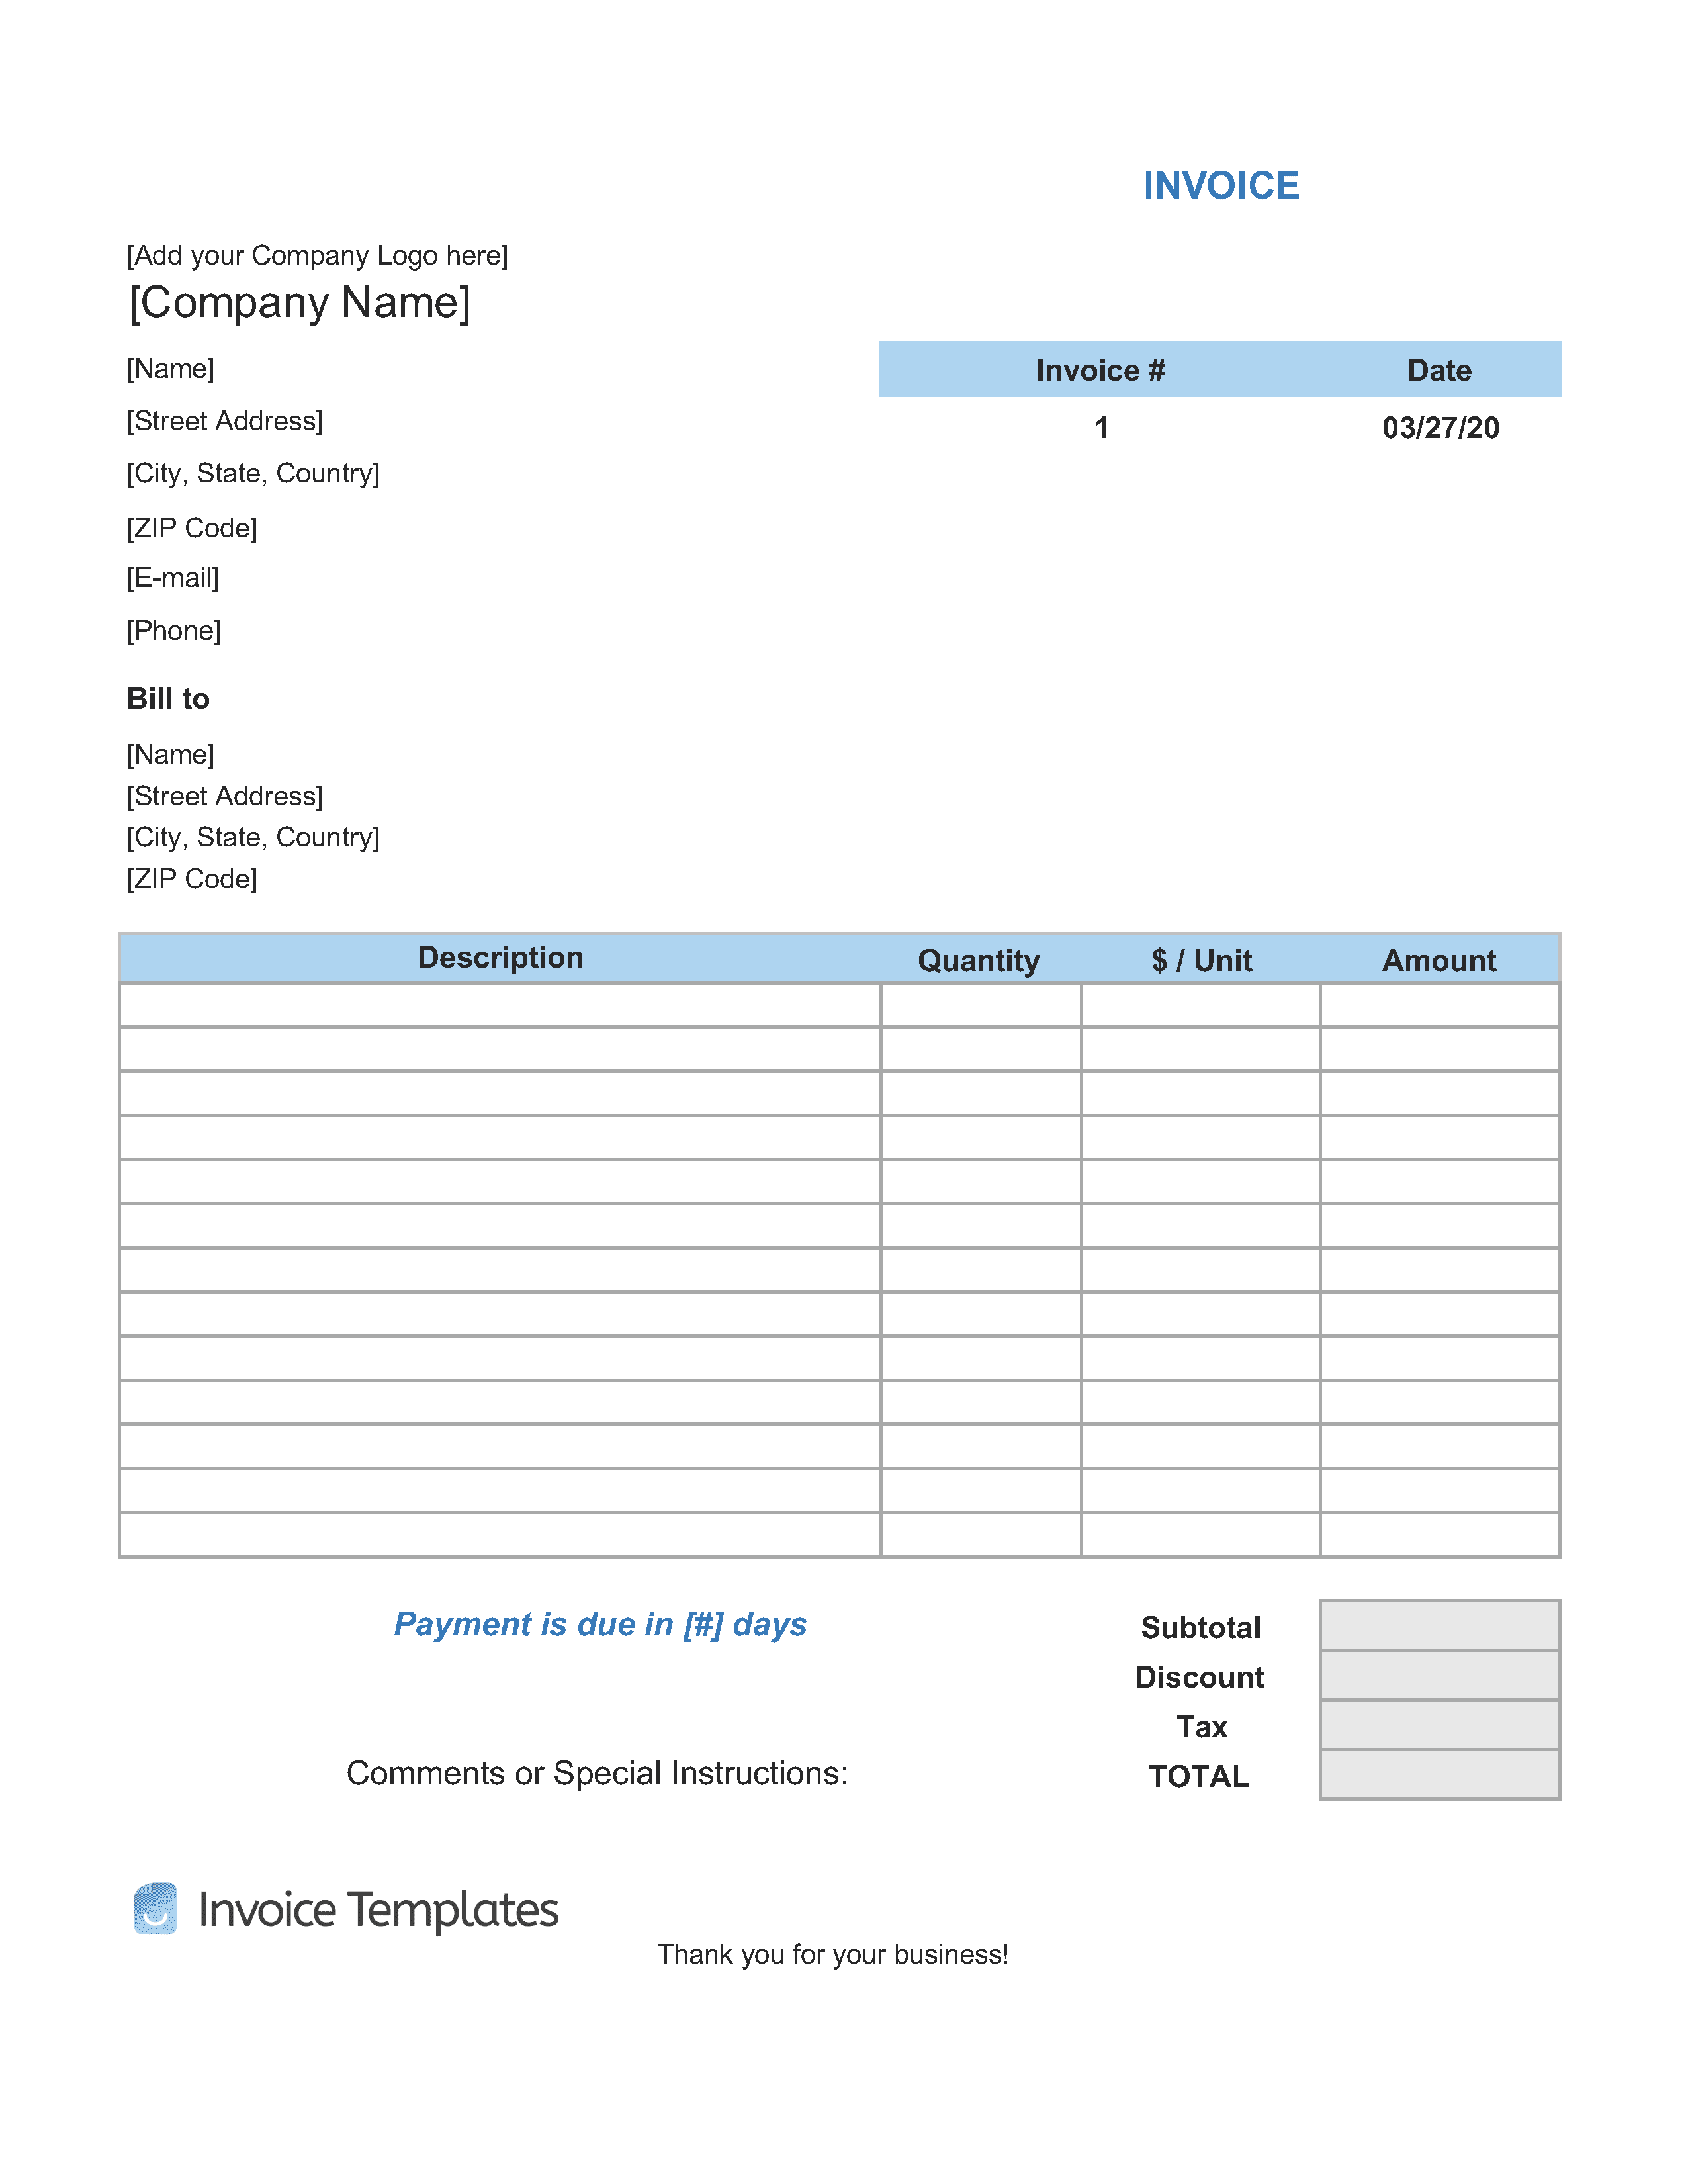 Fillable Pdf Downloadable Blank Invoice Template